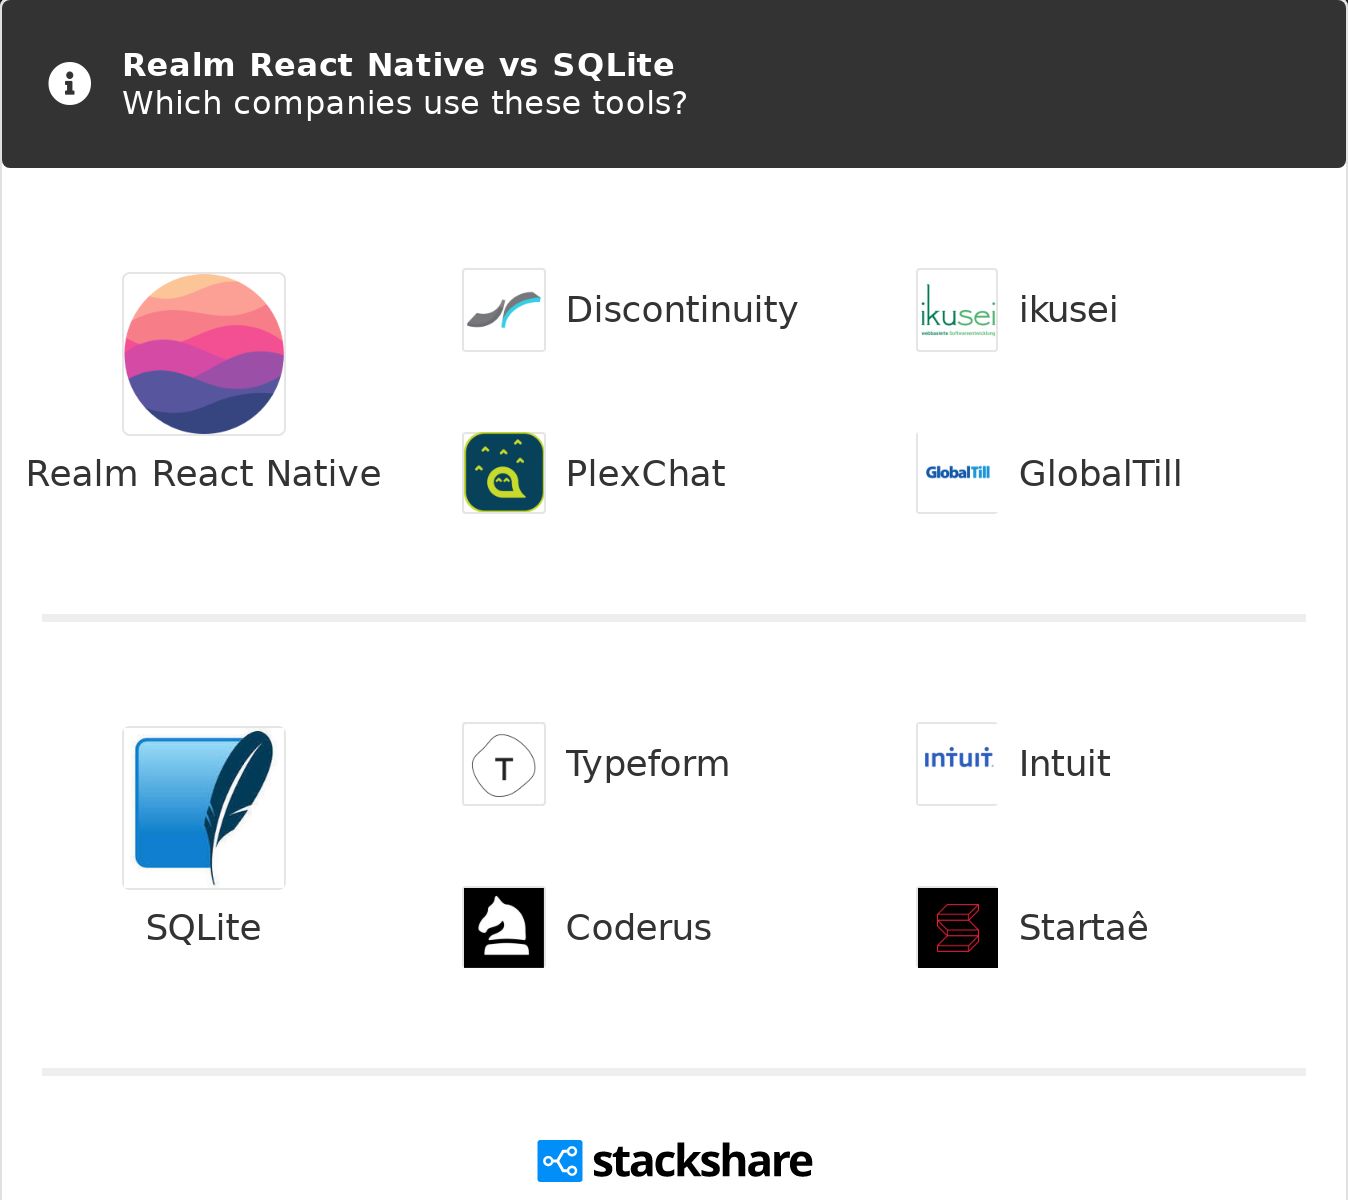 Realm React Native vs SQLite | What are the differences?